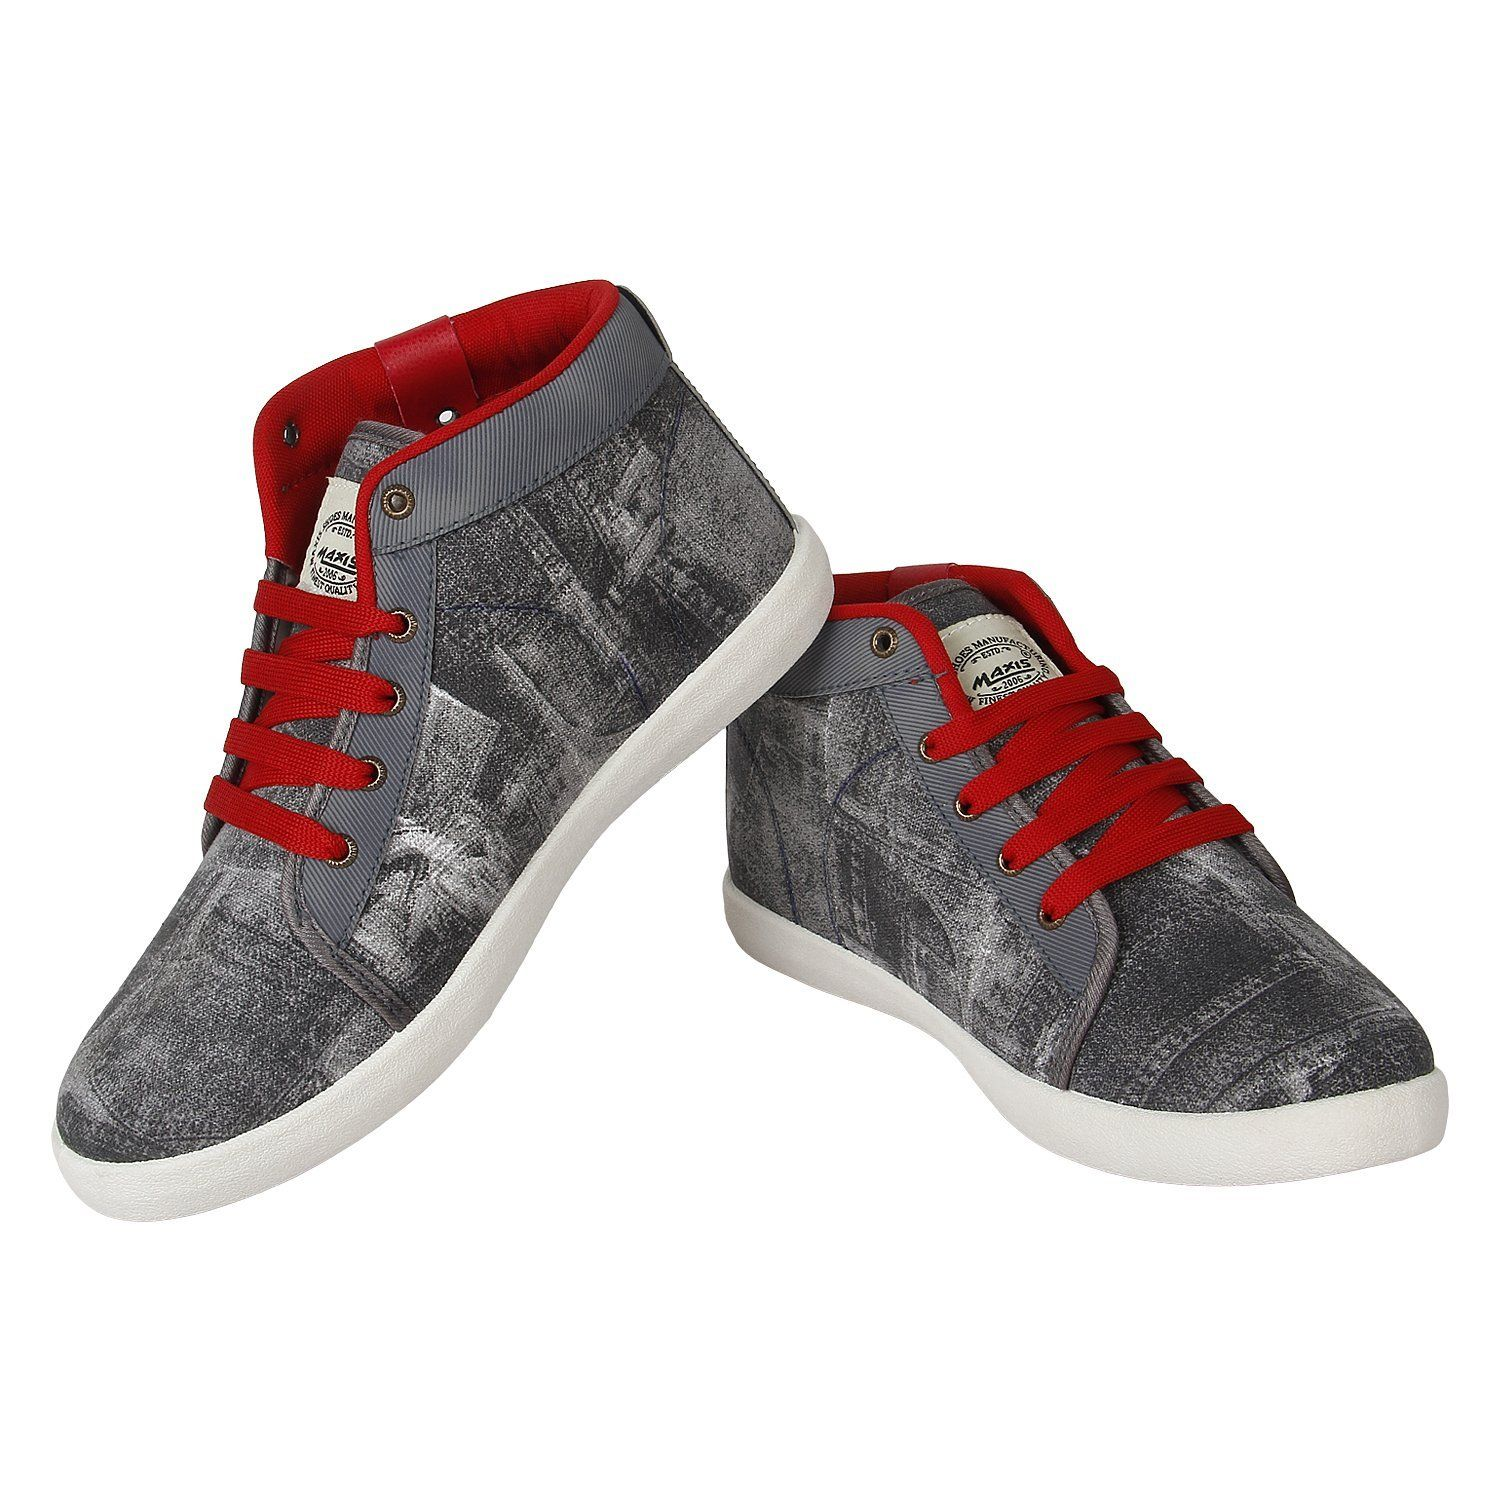 9b47becc6ca Buy Mens shoes online at low prices in India. Browse formal shoes ...